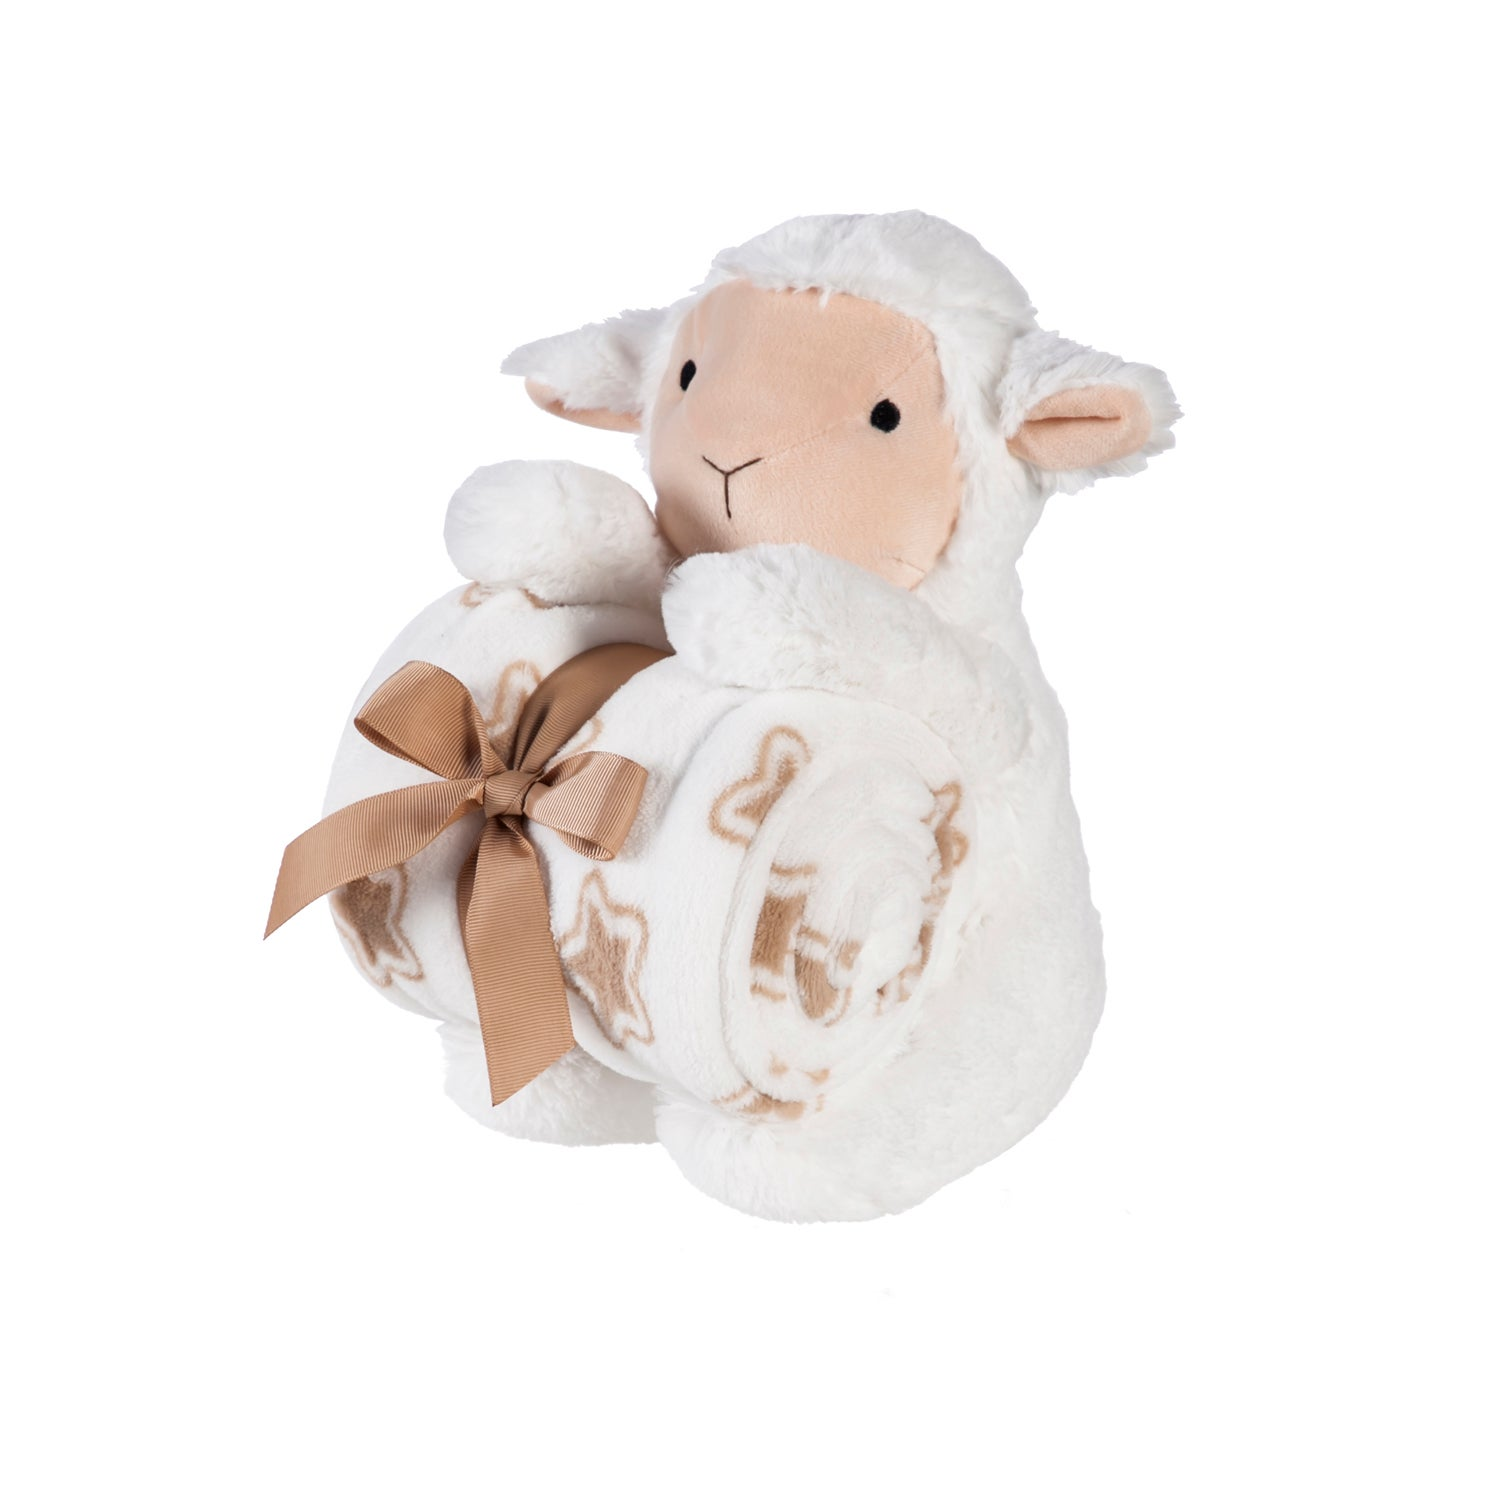 Cuddly Lamb Stuffed Animal with Blanket Gift Set